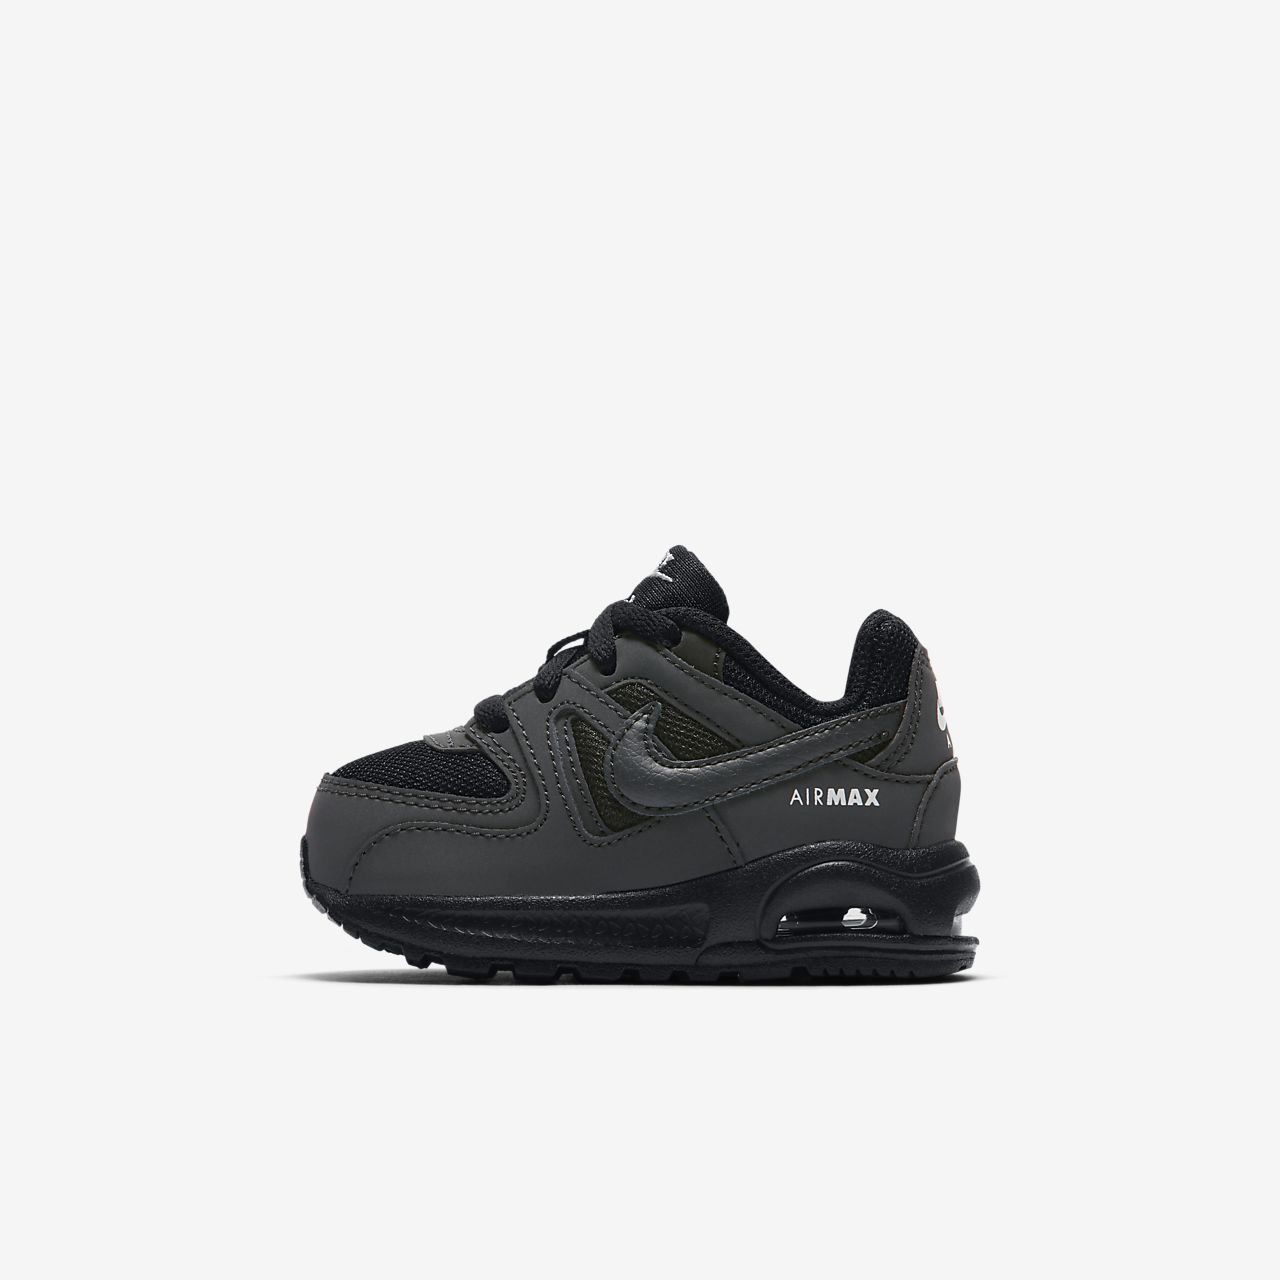 nike air max vs tanjun nz